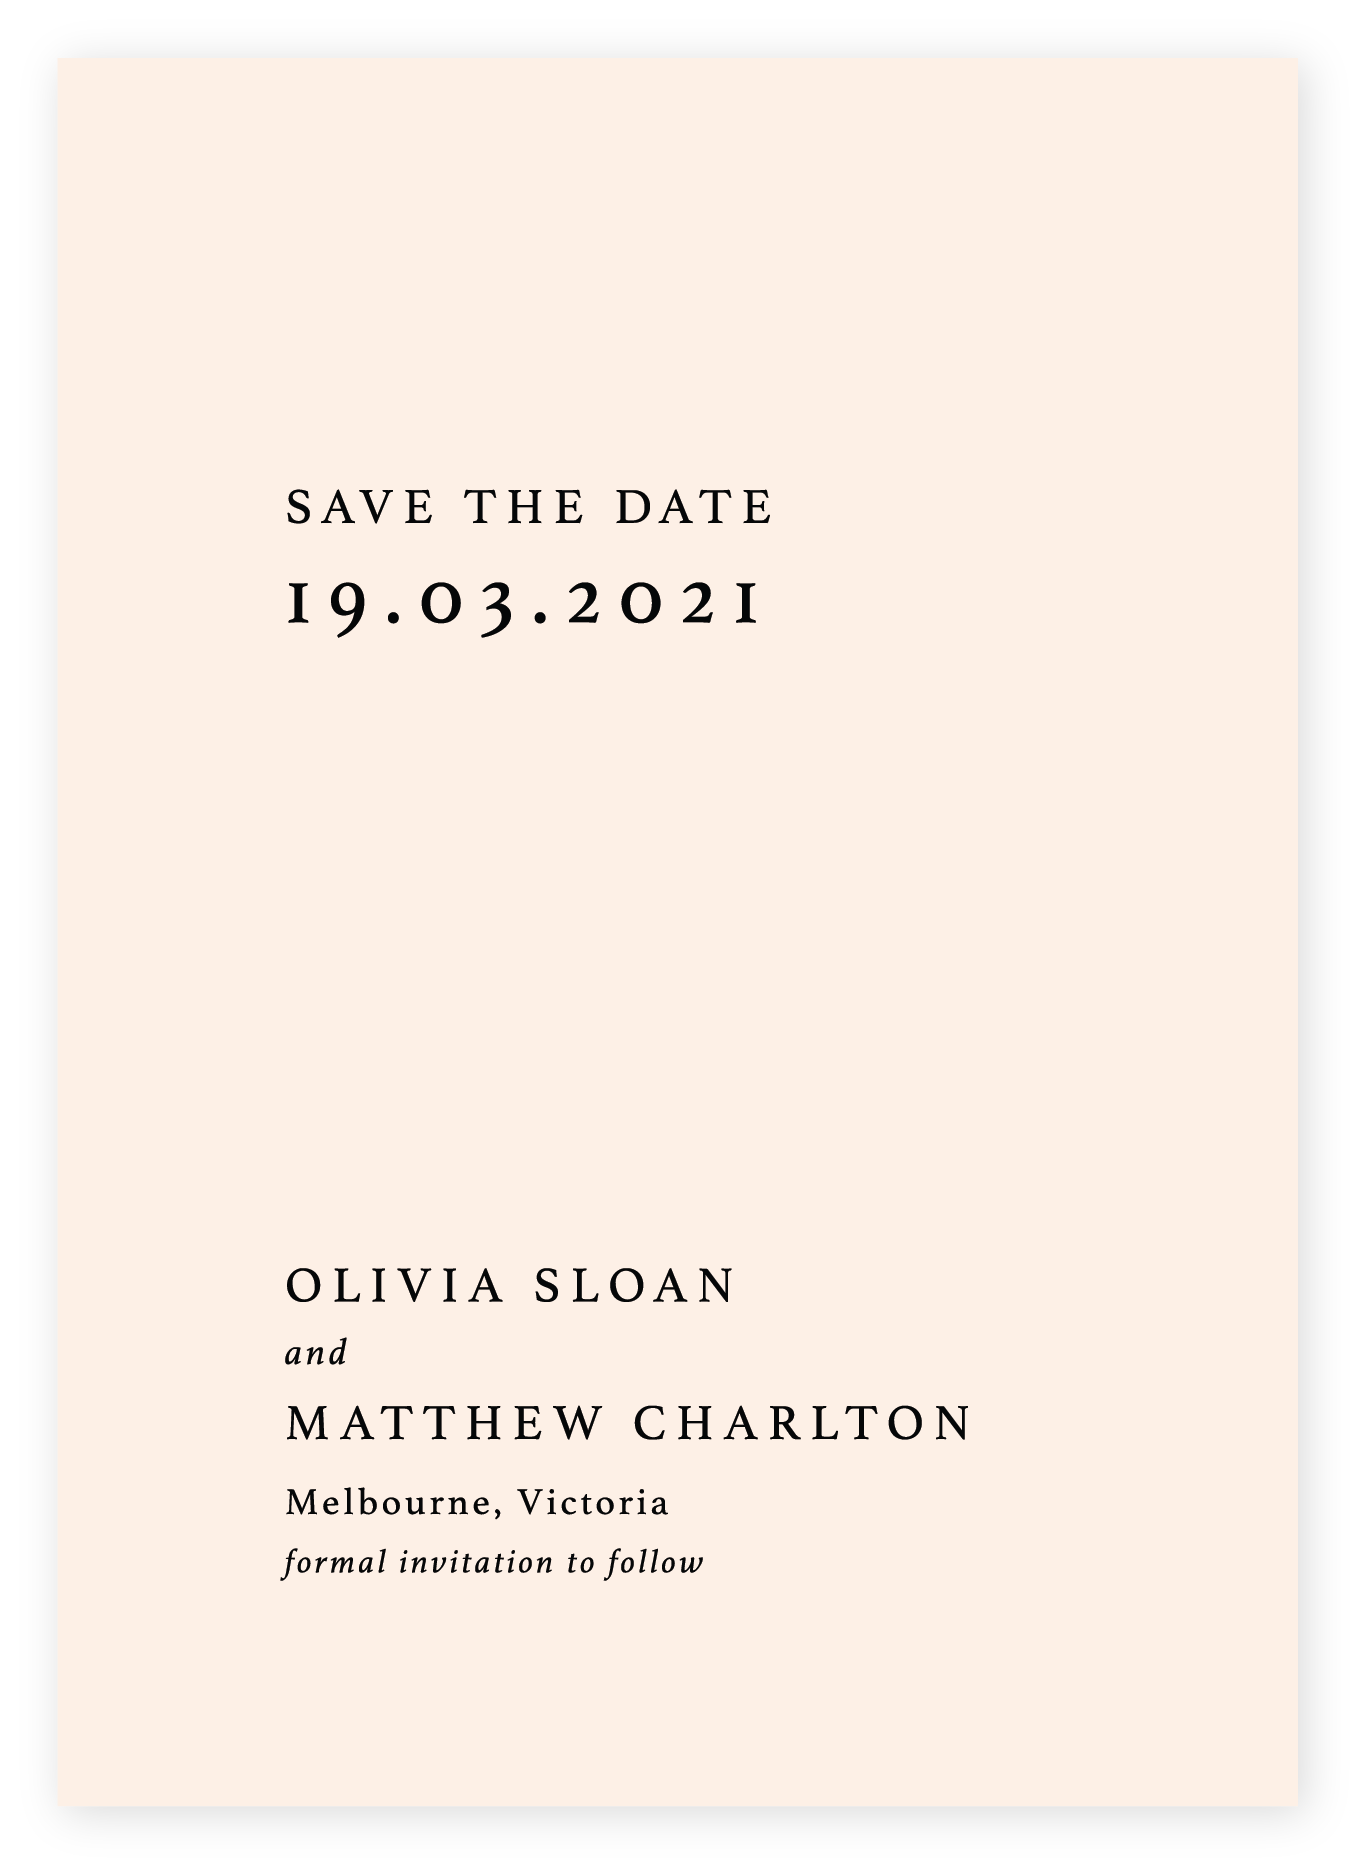 Minimalist Save the Date, black on Soft Peach card